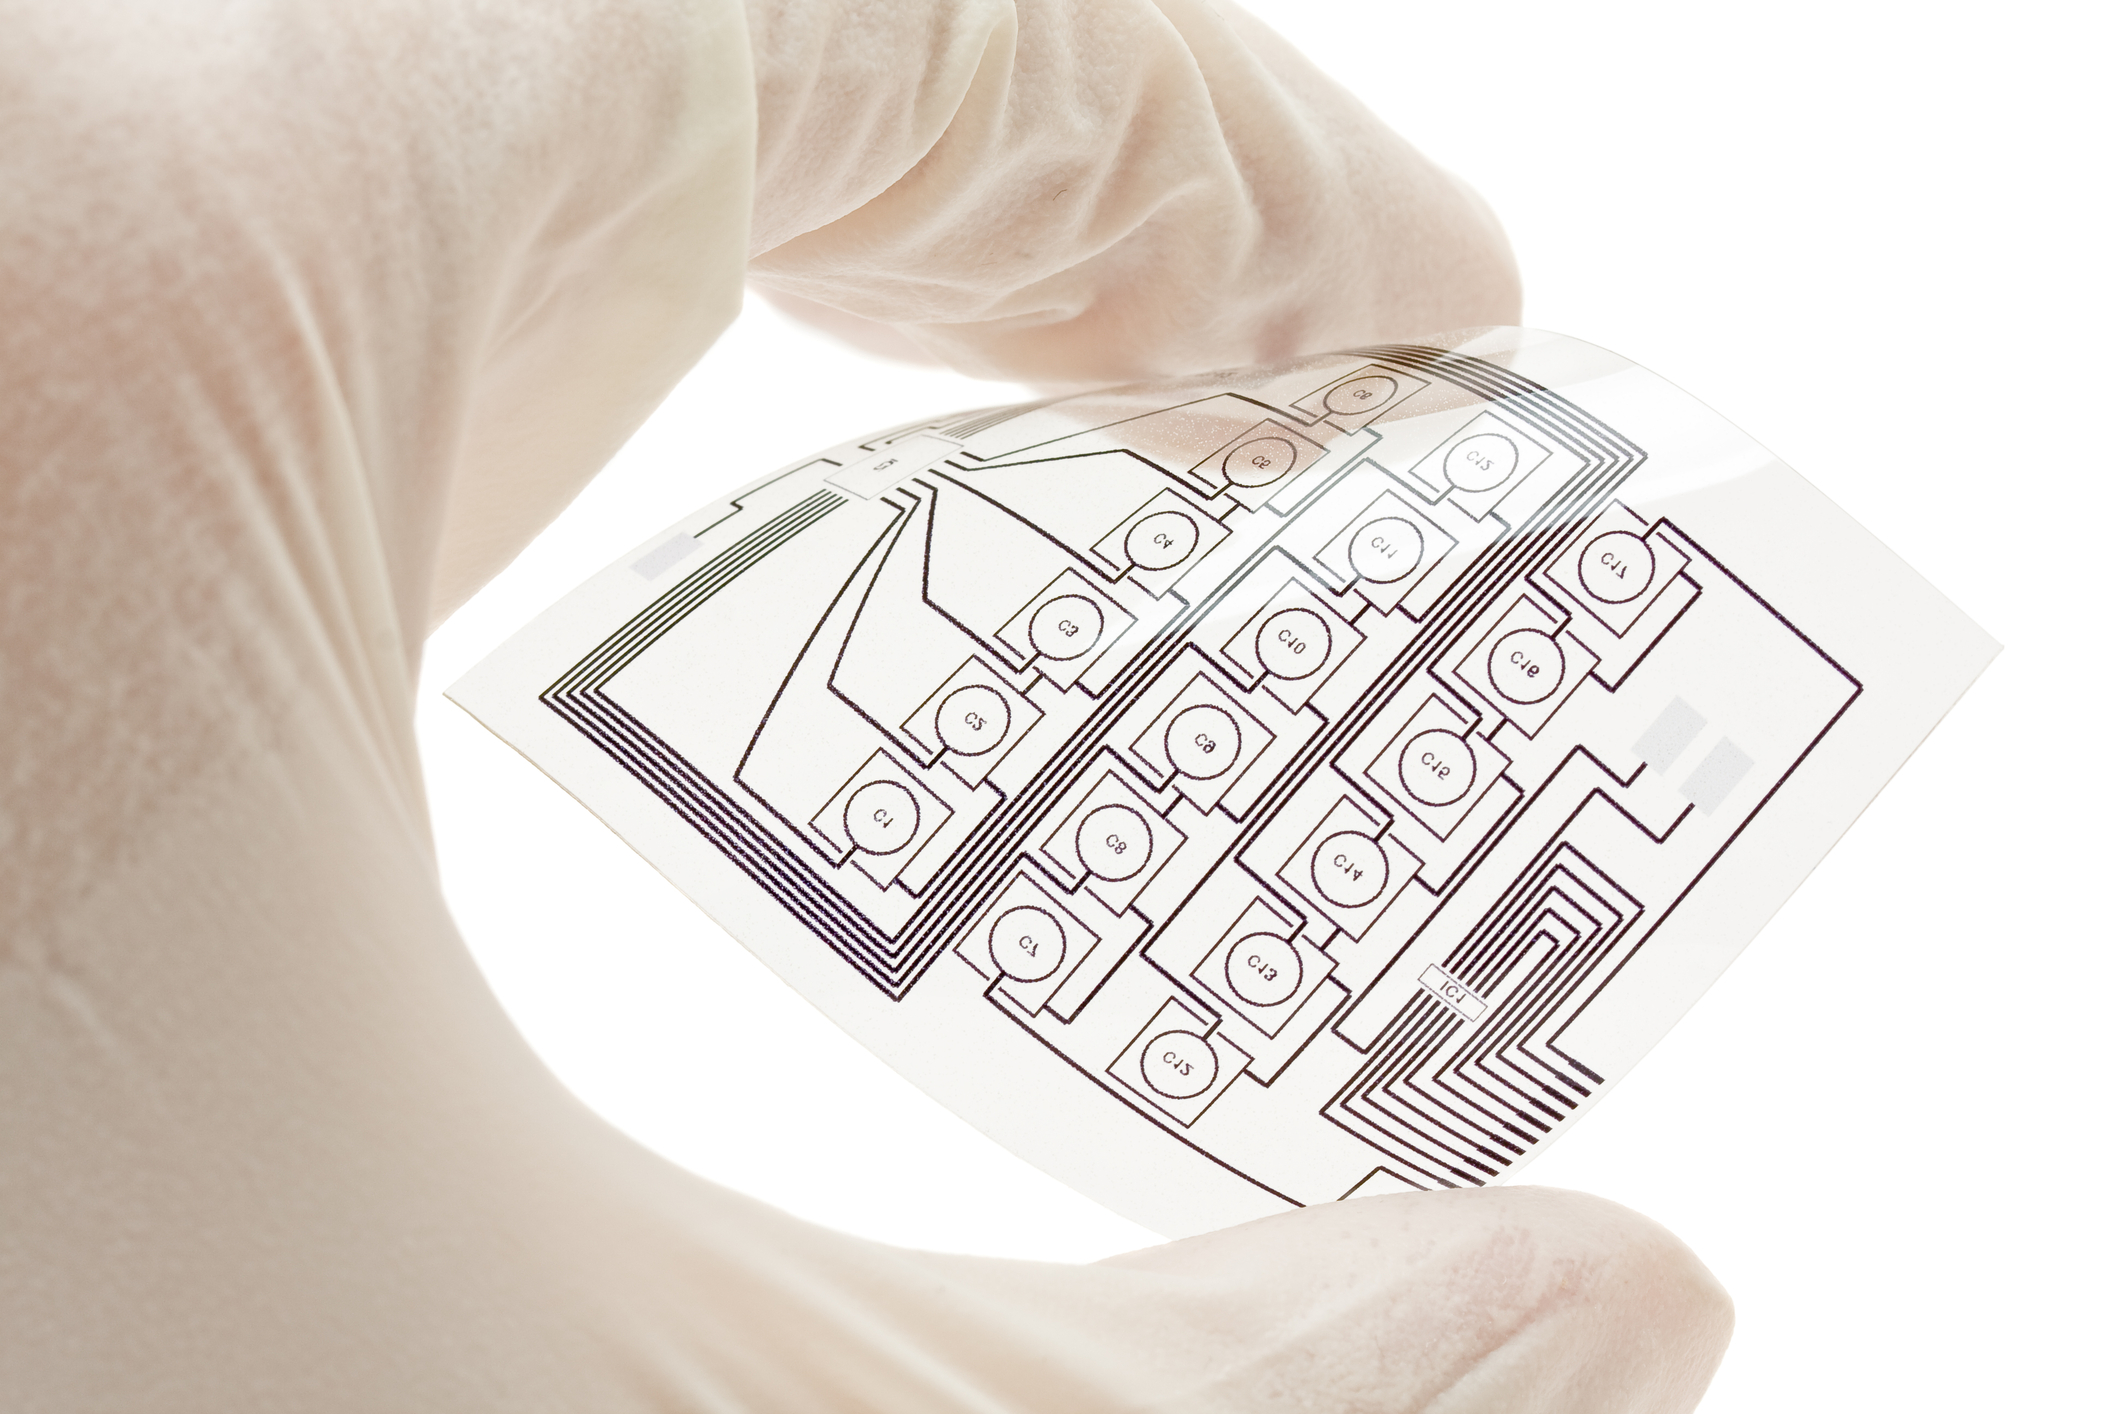 Conductive Ink for IVD Diagnostic Flexible_Circuitry